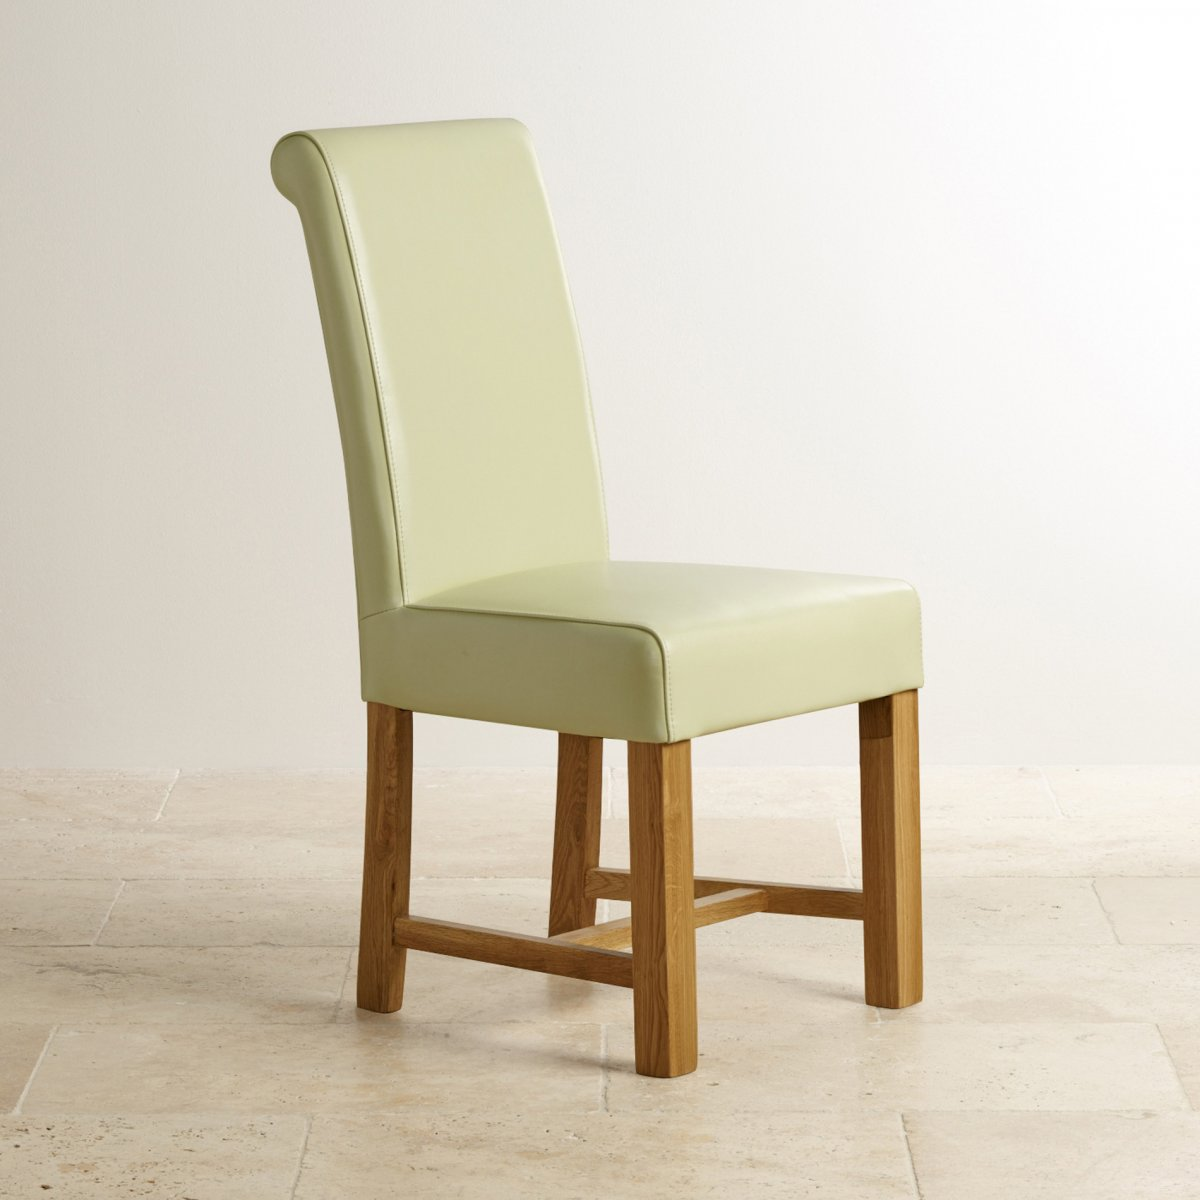 High Back Oak Leg Brown Leather Kitchen Dining Chairs X: Natural Oak Round Dining Set: Table + 4 Cream Leather Chairs